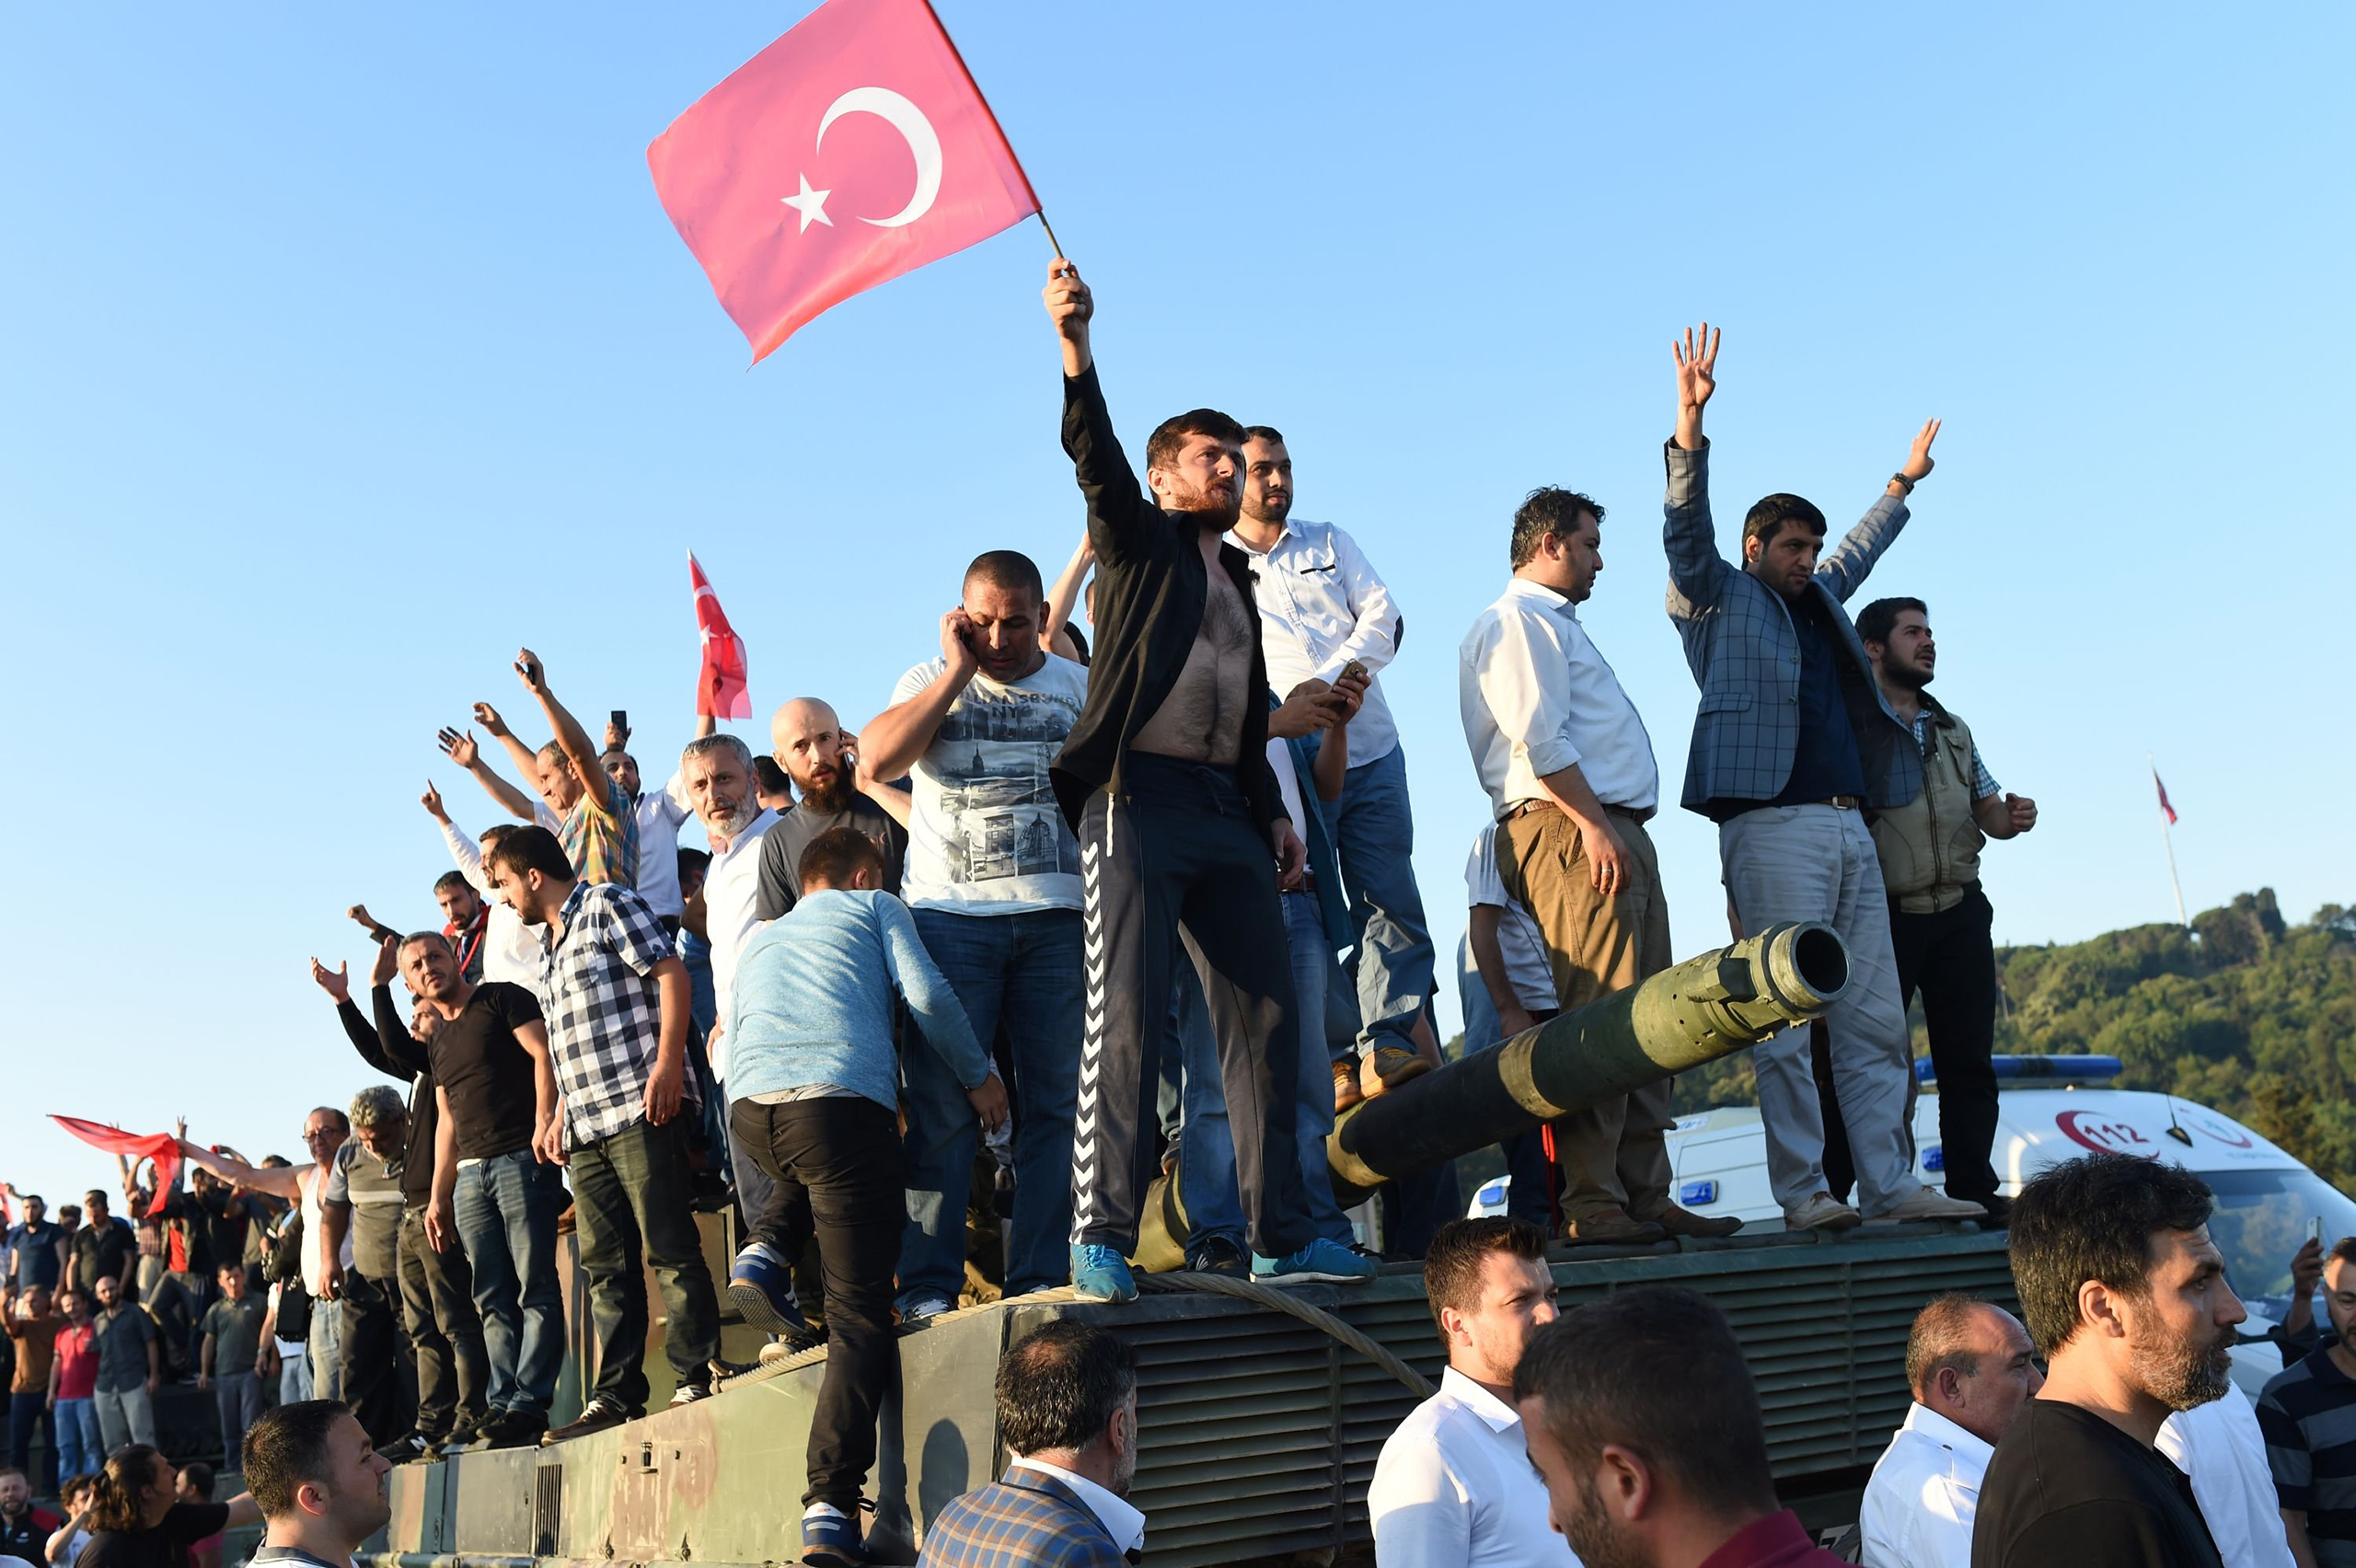 A group of men stand atop a tank the morning after a military coup attempt against the government of Recep Tayyip Erdogan turned violent, killing dozens and leaving hundreds of others detained, on the Bosphorus Bridge in Istanbul, Turkey, on July 16, 2016.